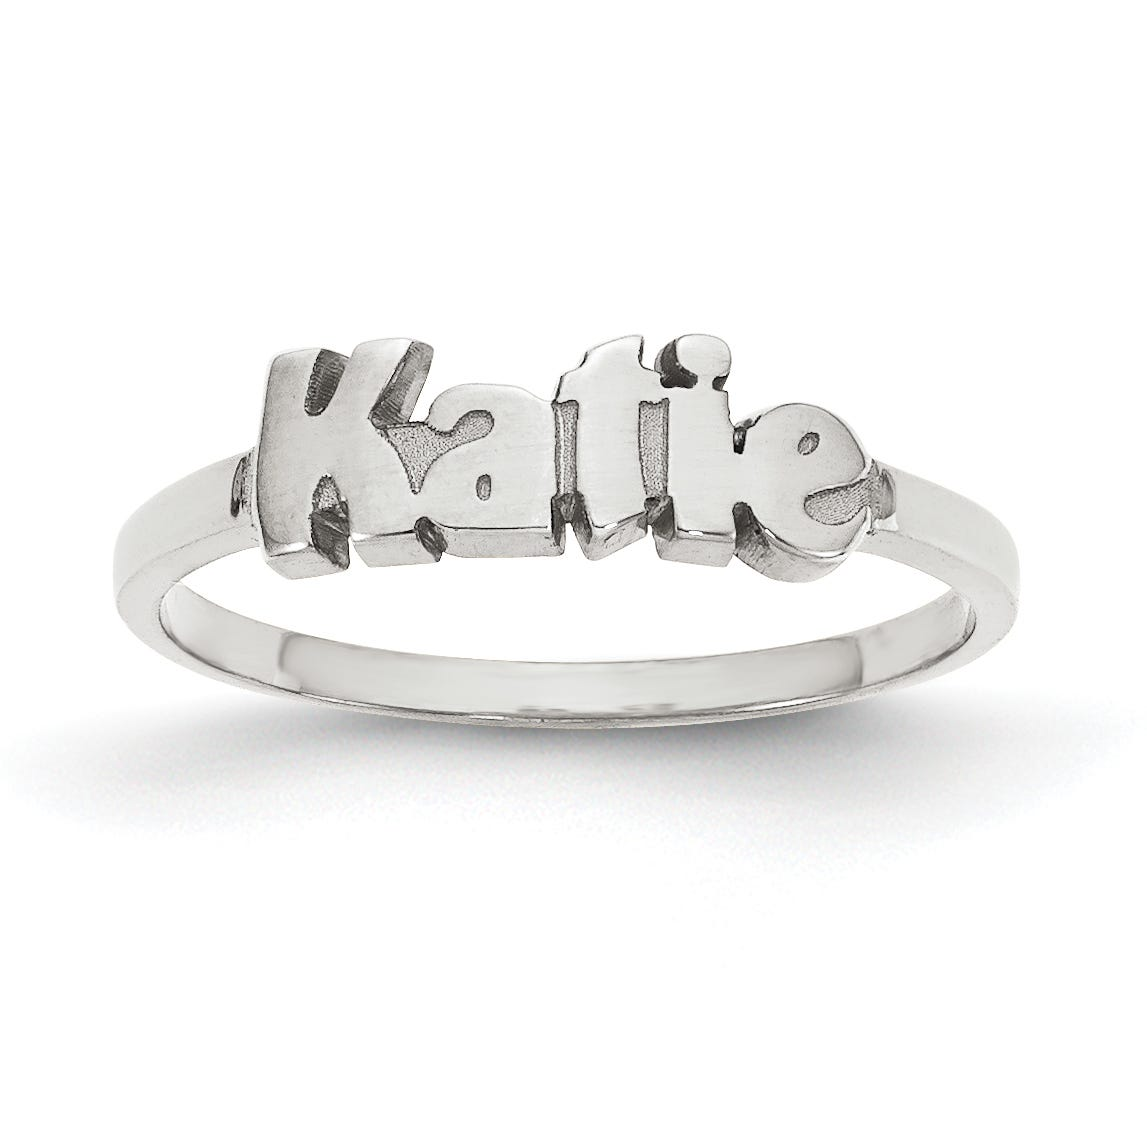 Laser Polished Block Name Ring in Sterling Silver (up to 9 letters)